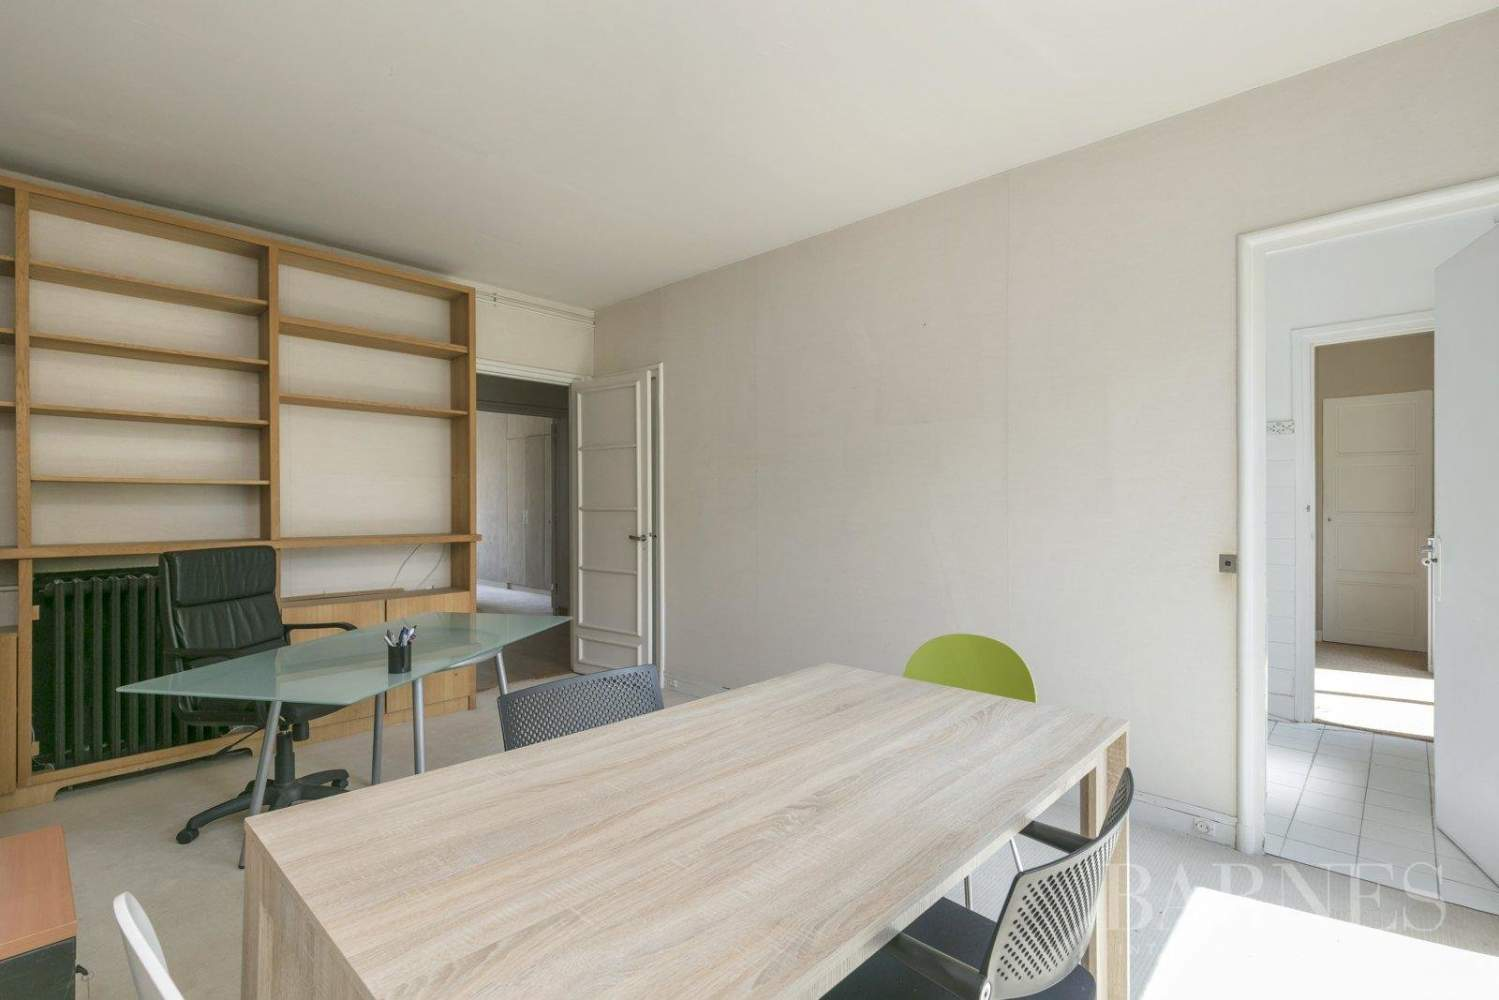 3-BEDROOM APARTMENT - CLEAR VIEWS - BALCONIES - NEUILLY / CHÂTEAU - NORTIER picture 5